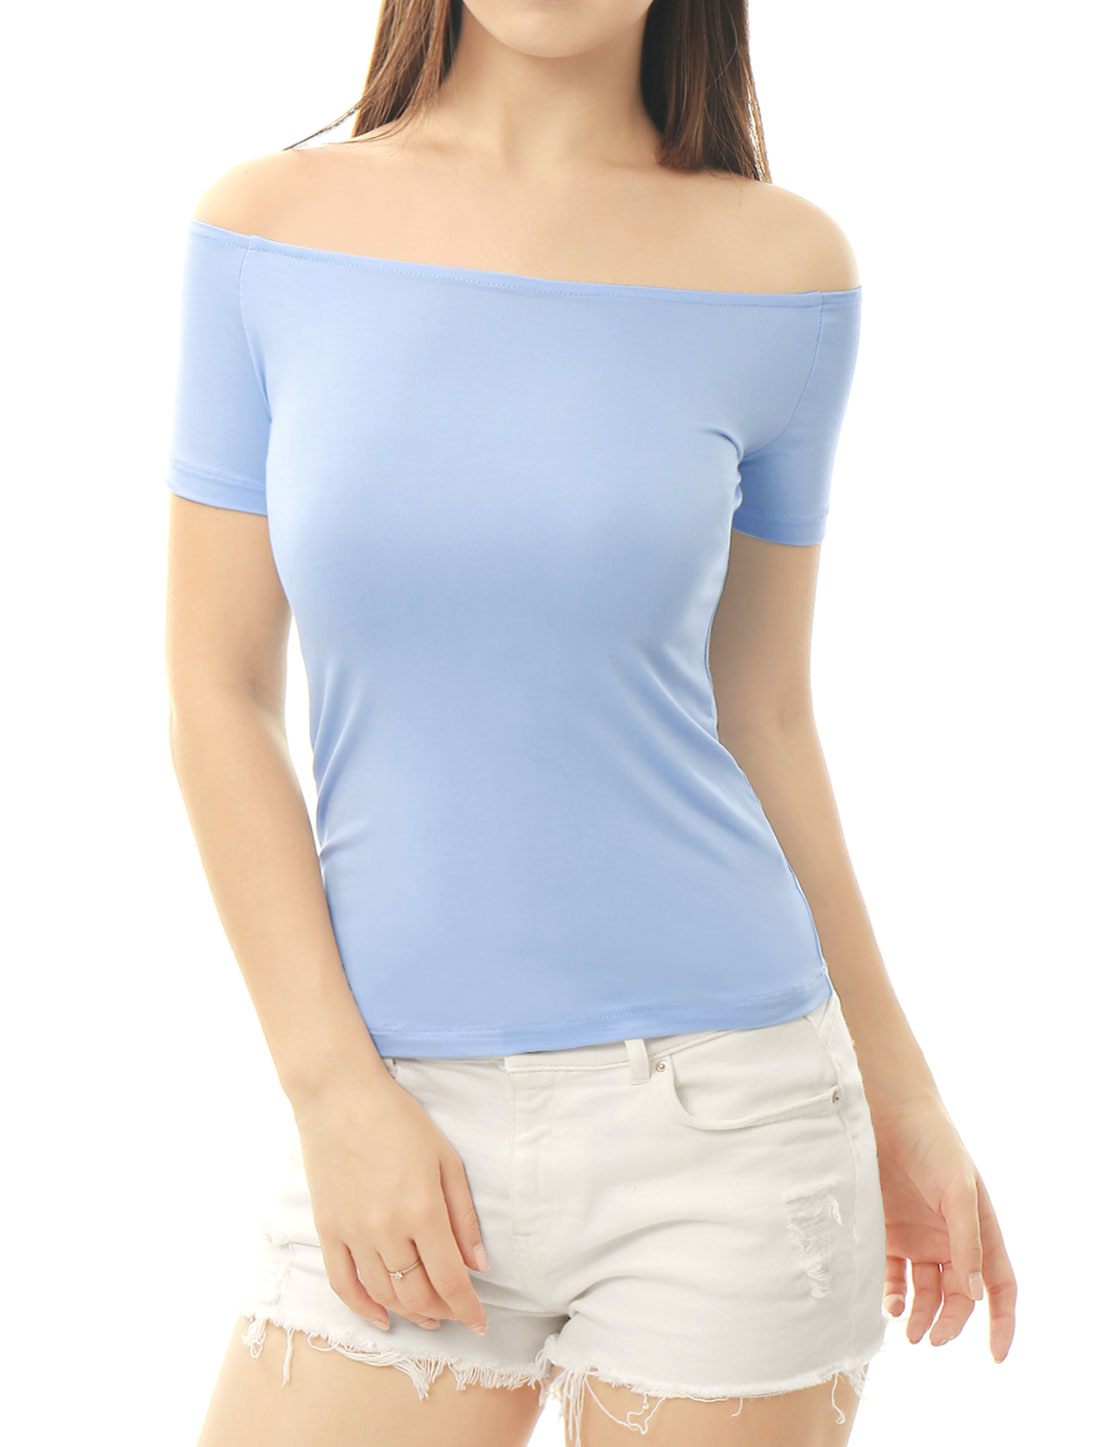 Women Short Sleeves Slim Fit Off the Shoulder Top Light Blue L